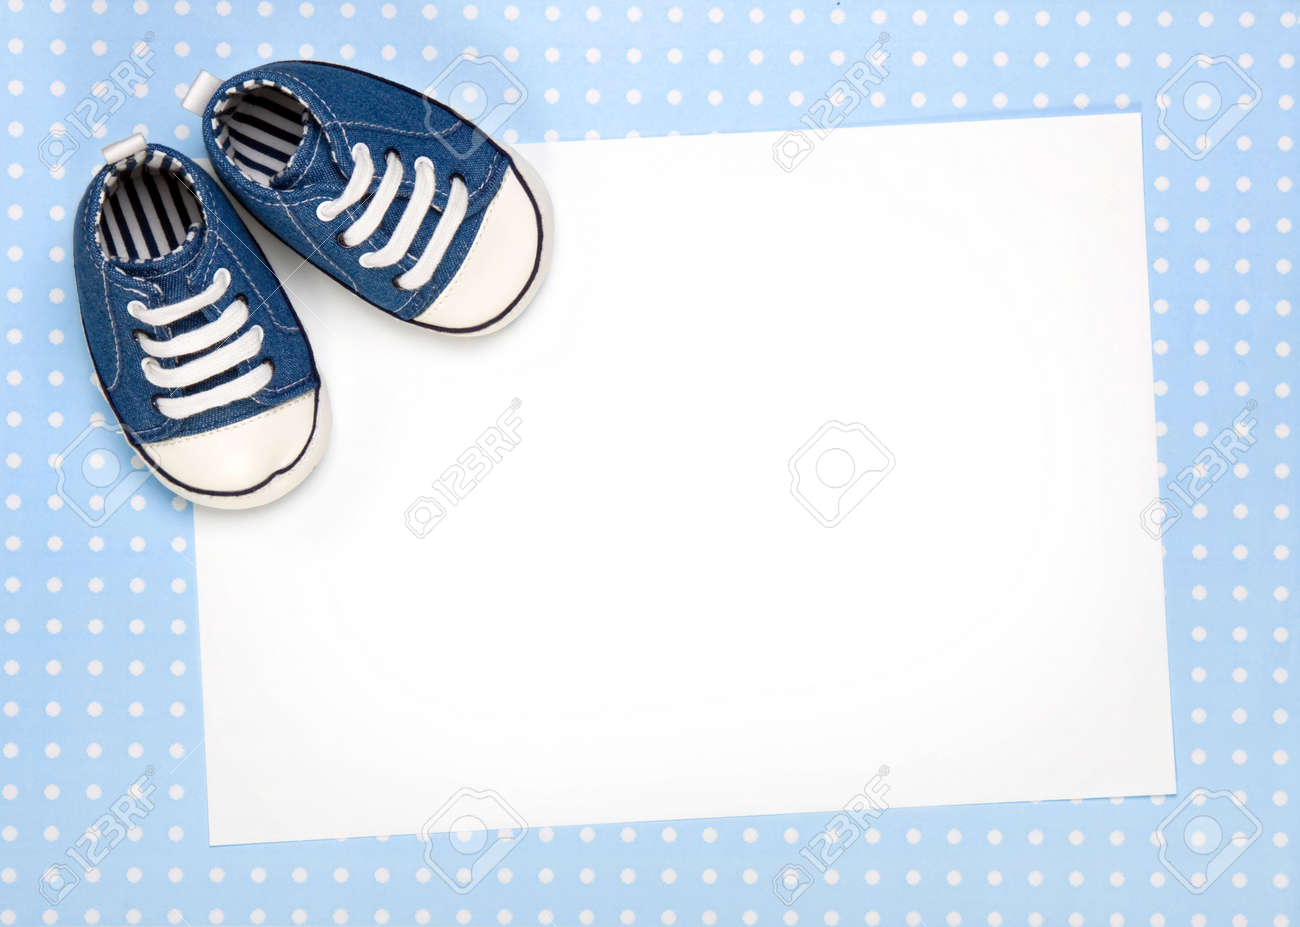 Blank Card For New Baby Or Party Invitation Stock Photo Picture And